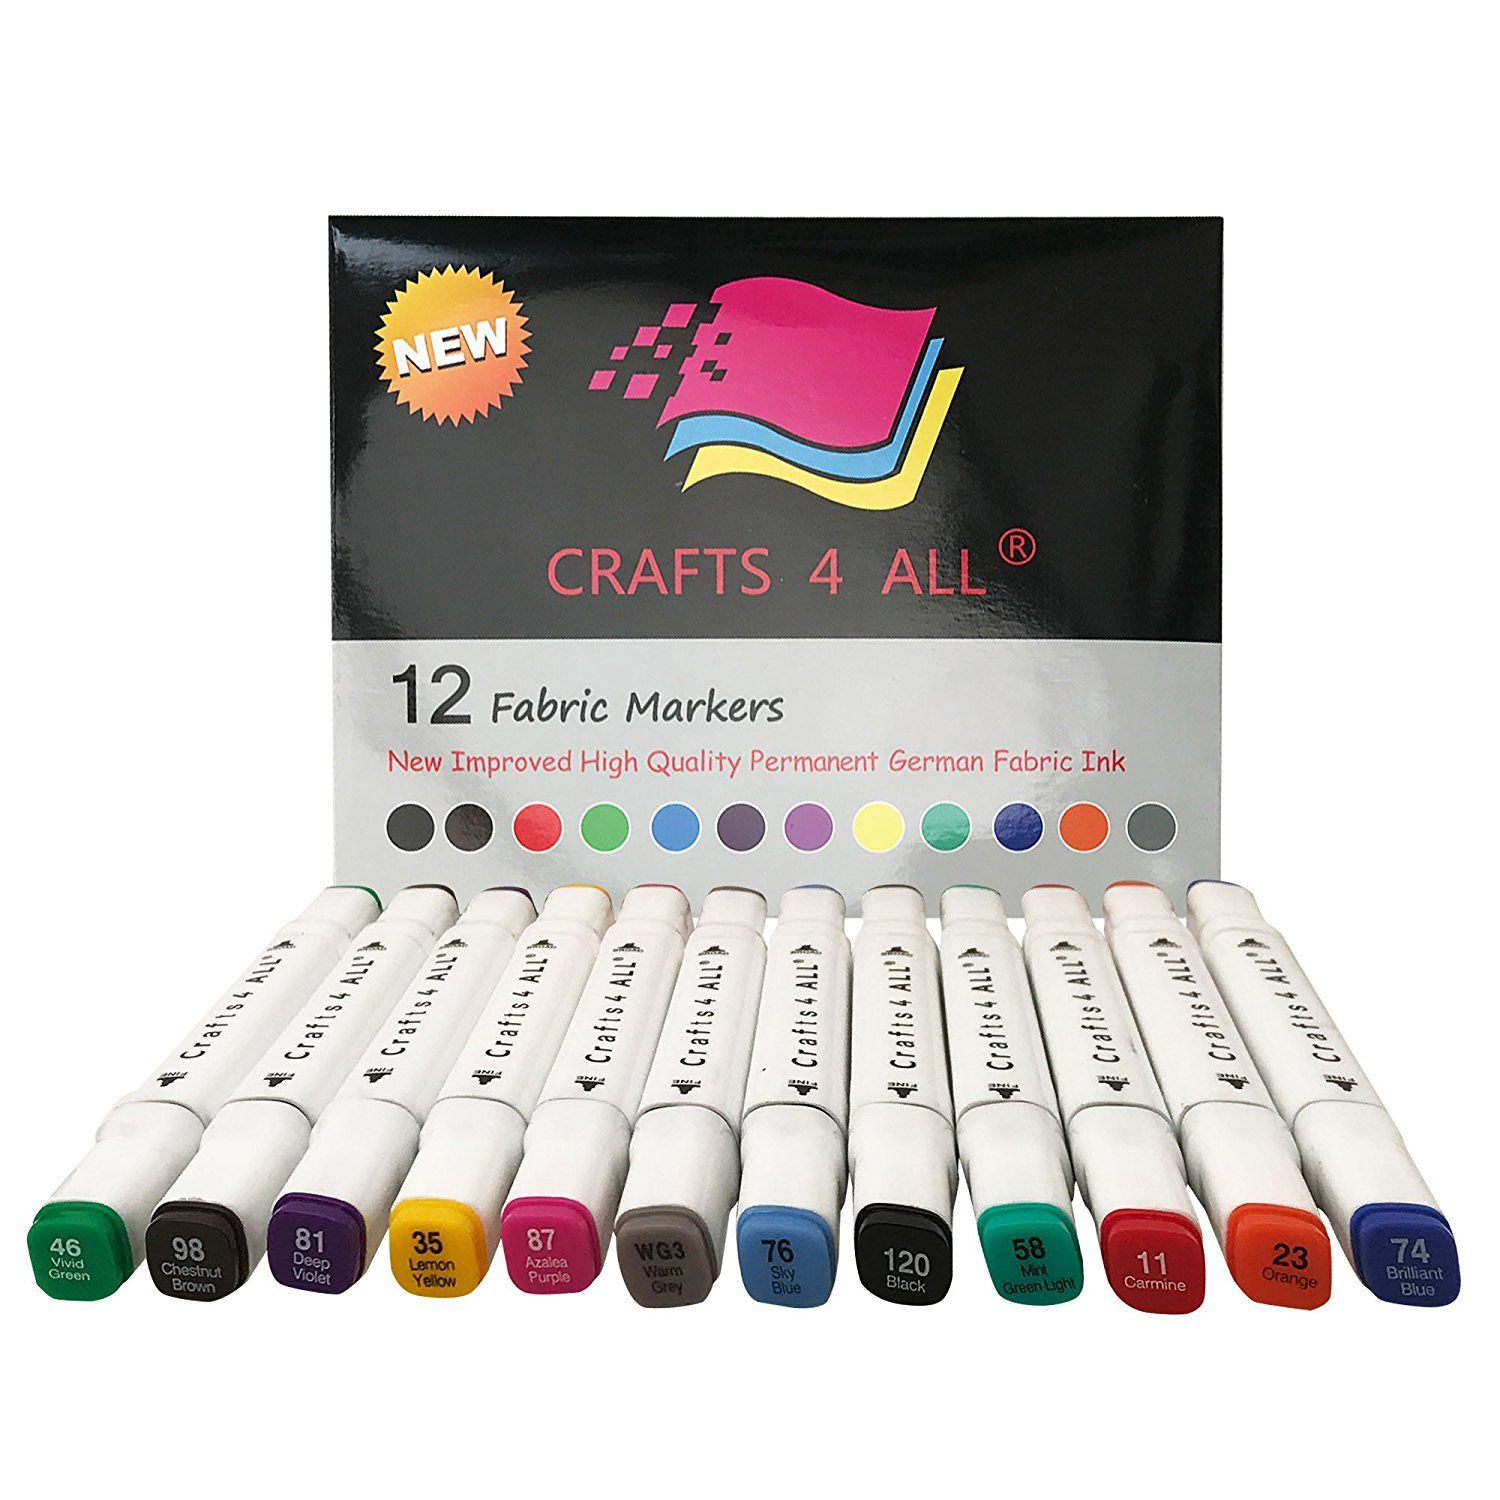 Pin by Suzanna on art supplies | Pinterest | Fabric markers